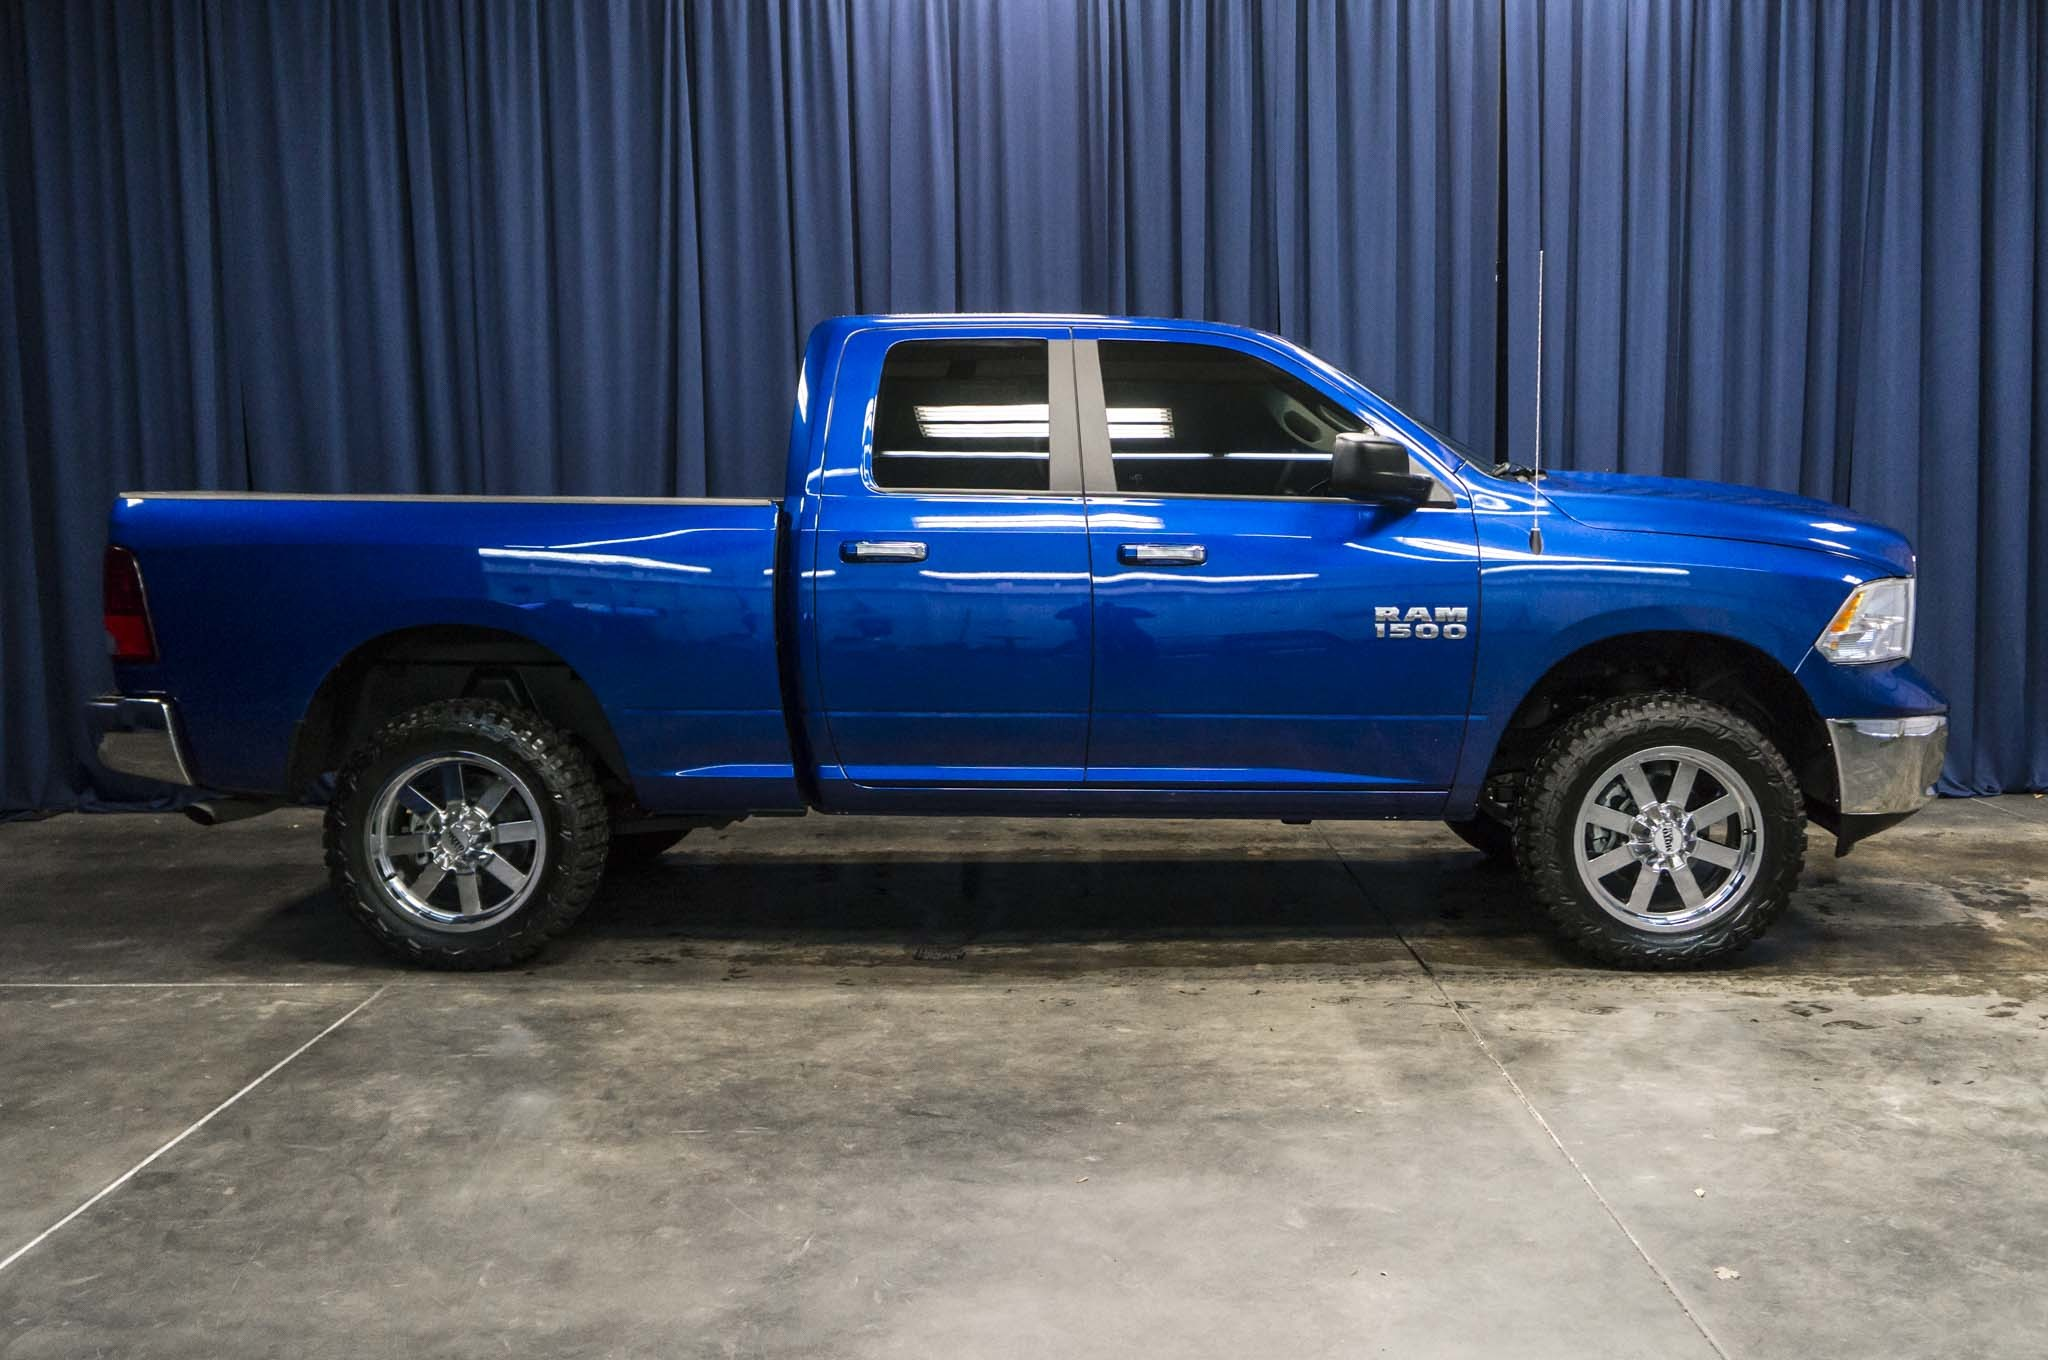 Used Lifted 2016 Dodge Ram 1500 SLT 4x4 Truck For Sale A